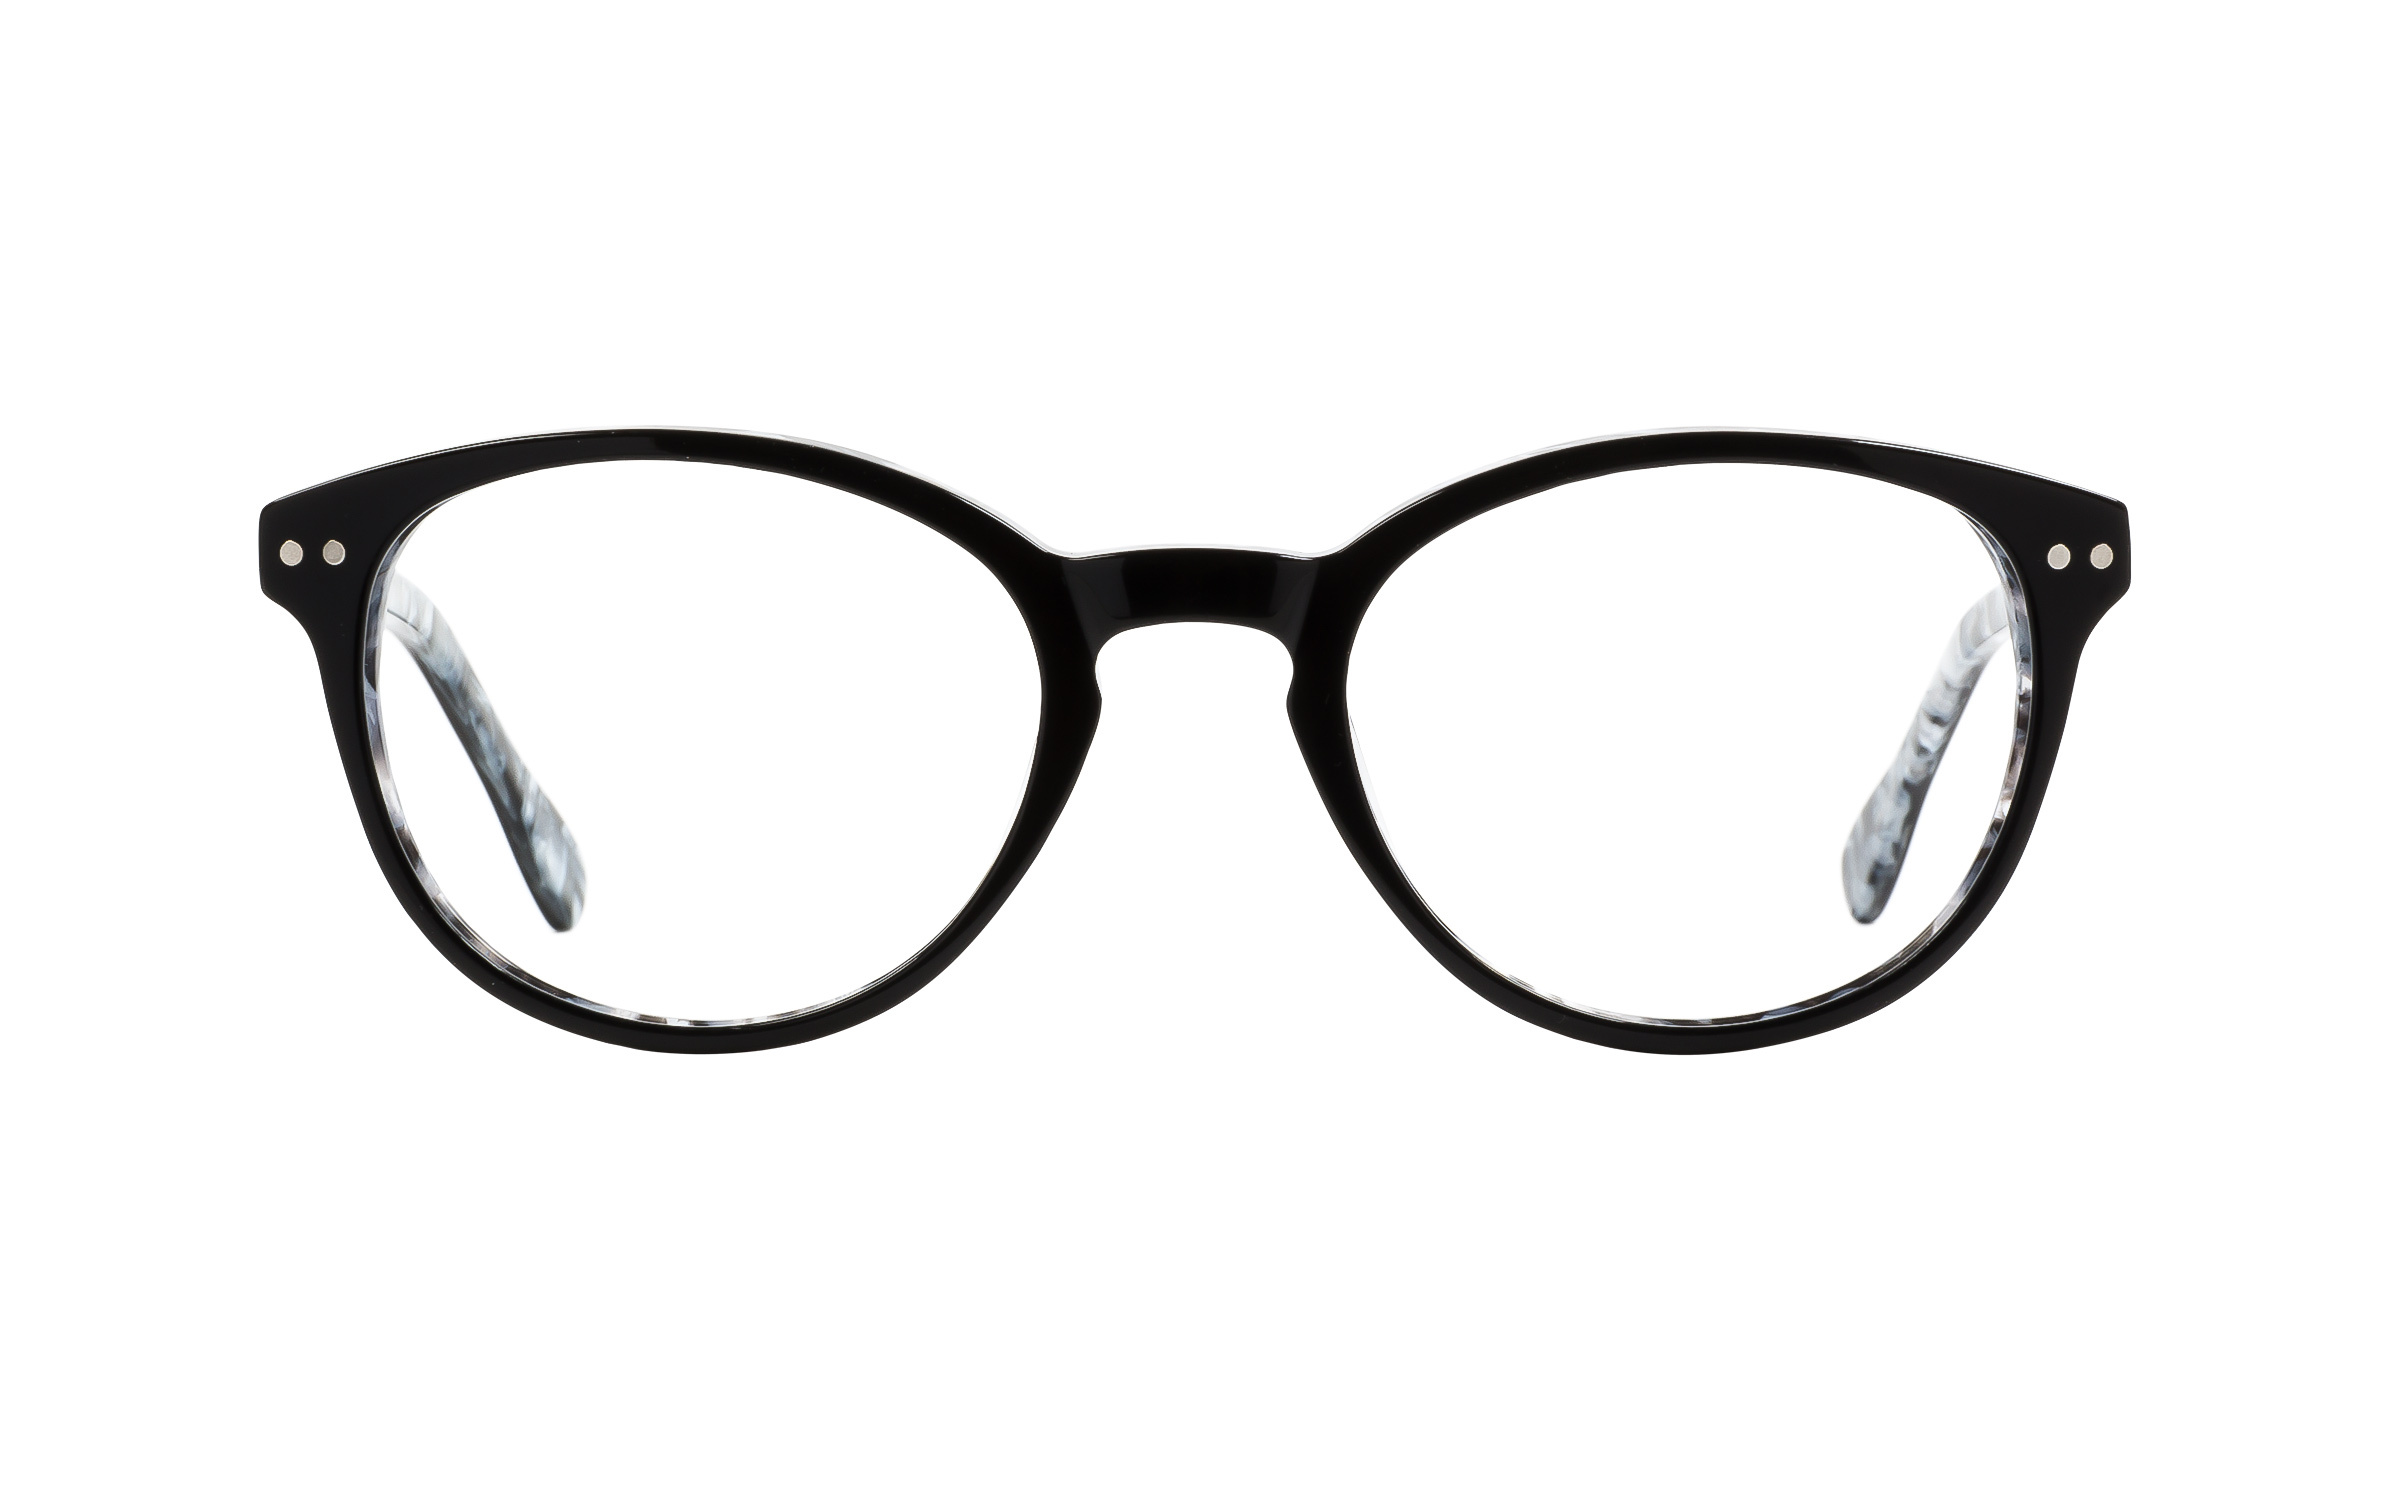 Retro_Glasses_Black_7_for_All_Mankind_Online_Coastal